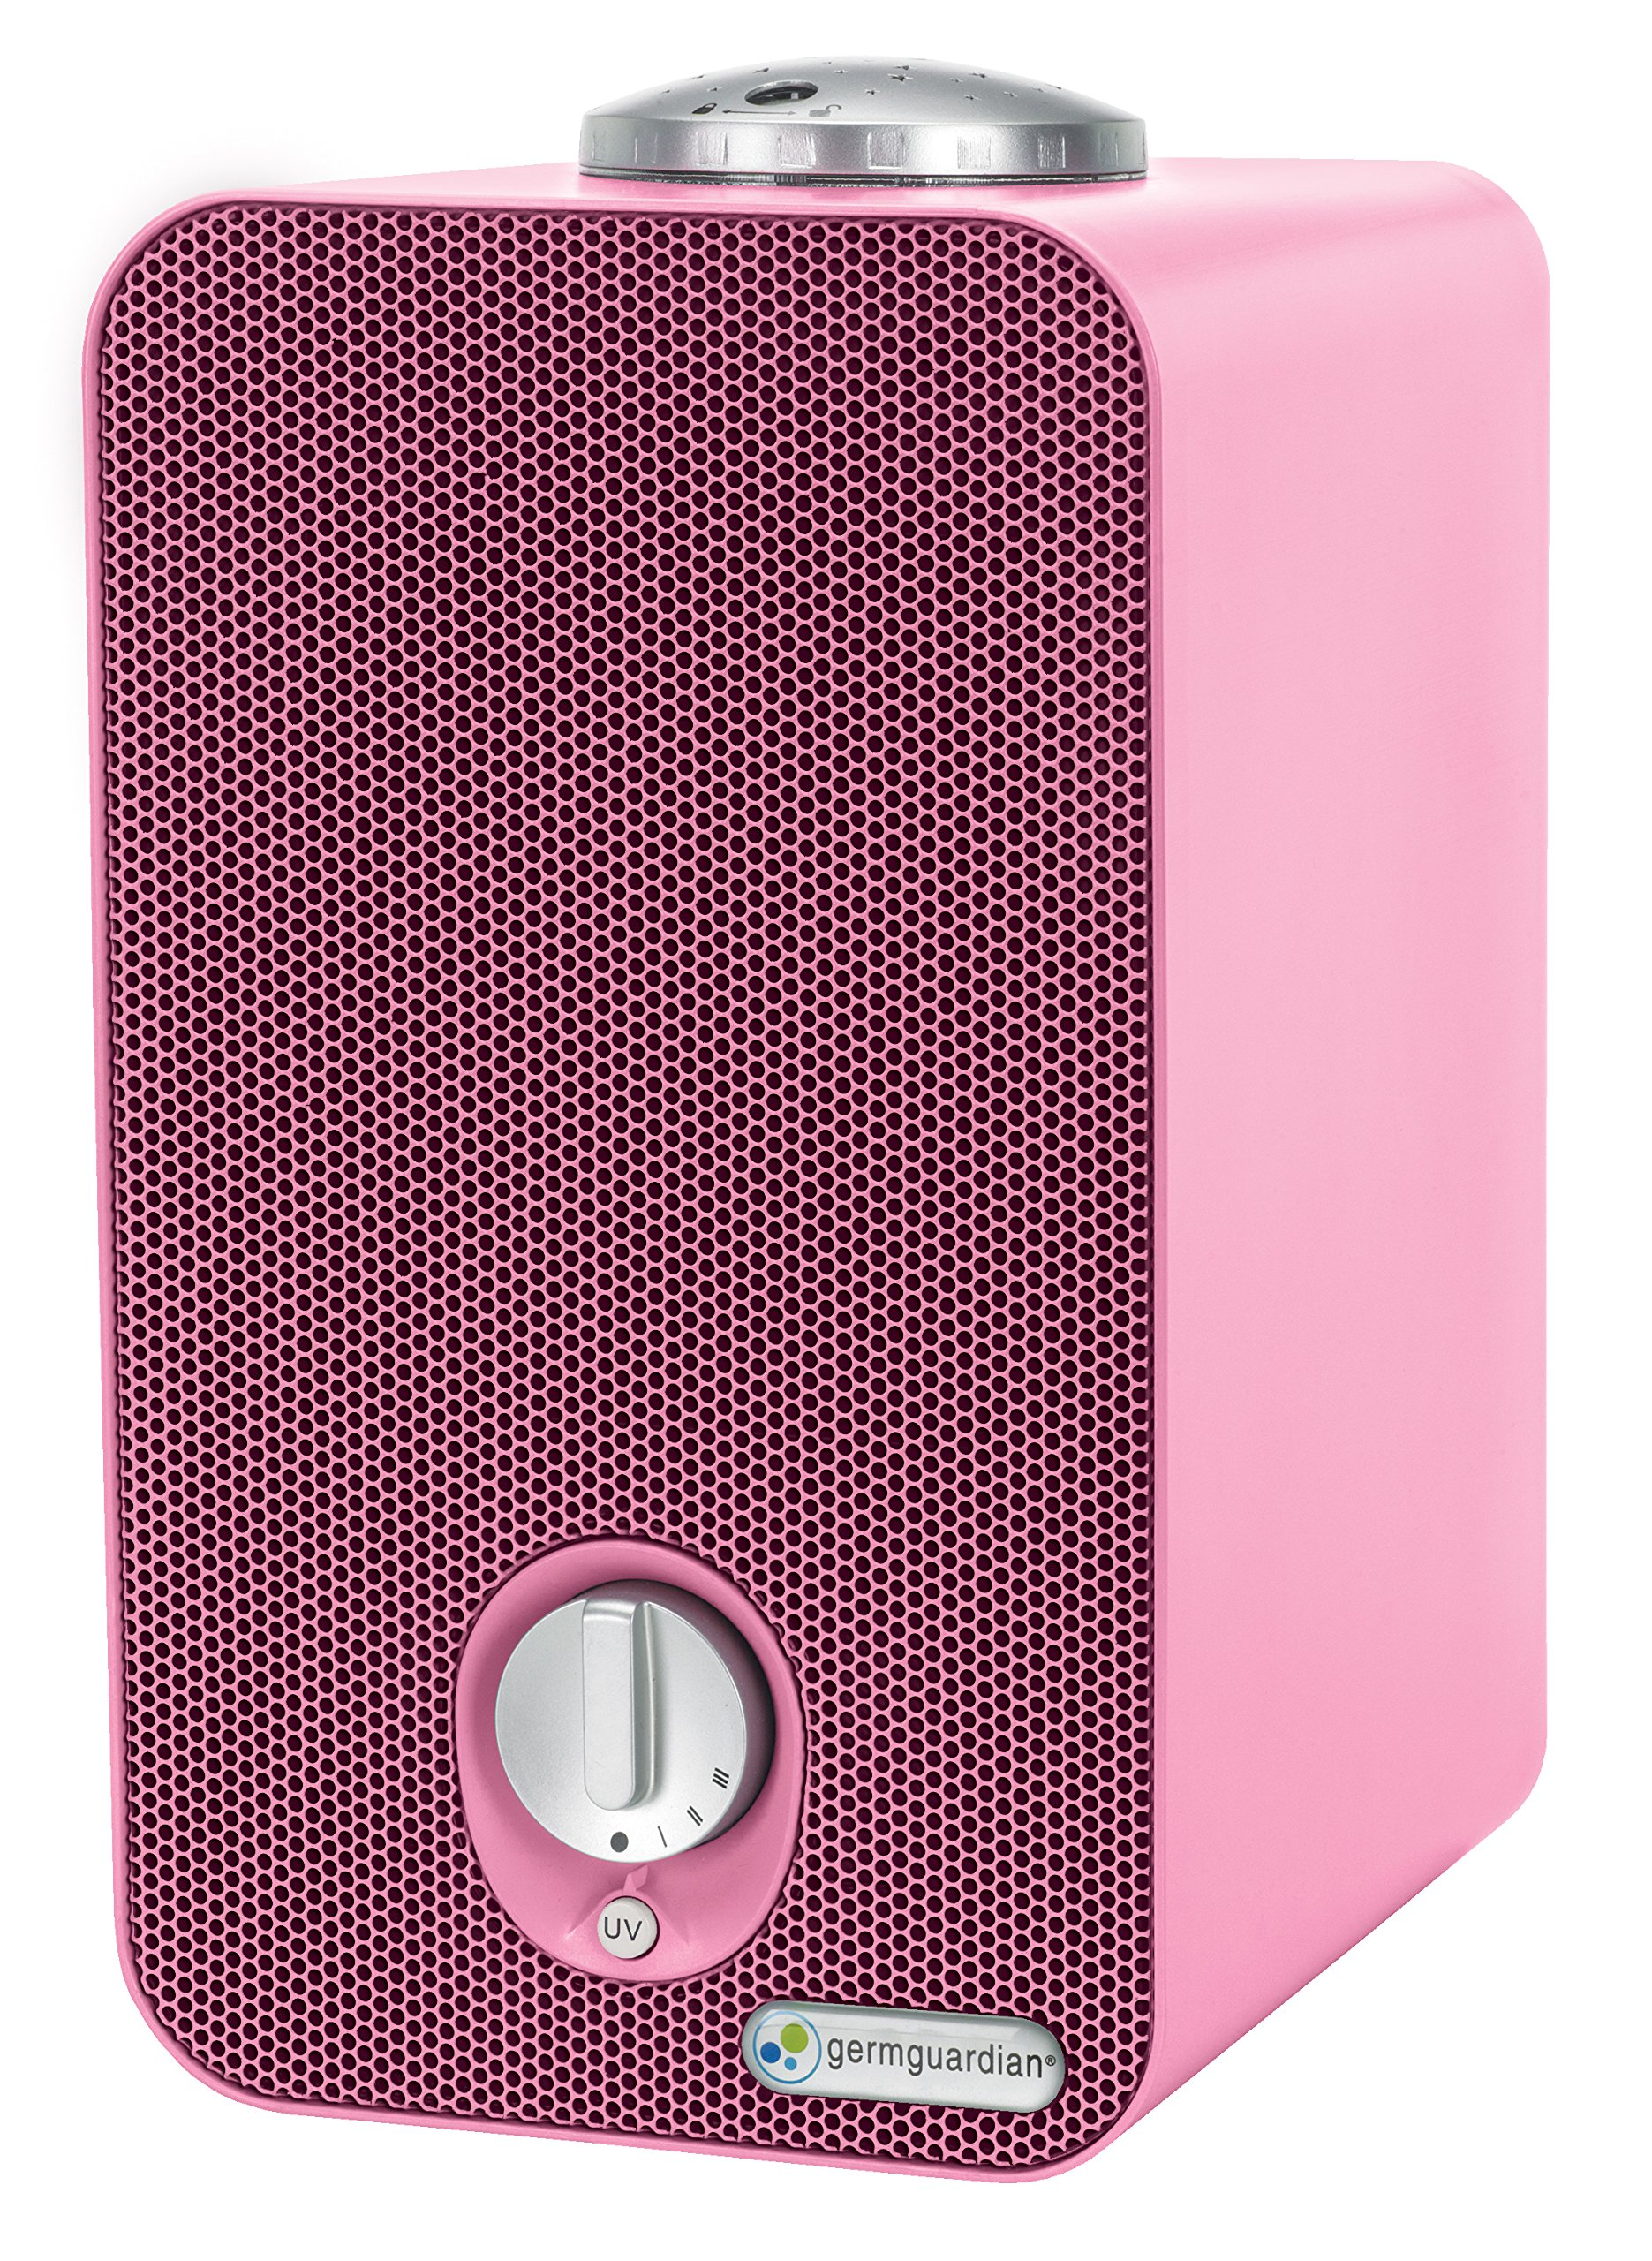 GermGuardian AC4150PCA Night-Night 4-in-1 Air Purifier, HEPA Filter, UV-C Sanitizer, Captures Allergens, Smoke, Odors, Mold, Dust, Germs, Pets, Smoker, Projector, Germ Guardian Home Air Purifier, Pink